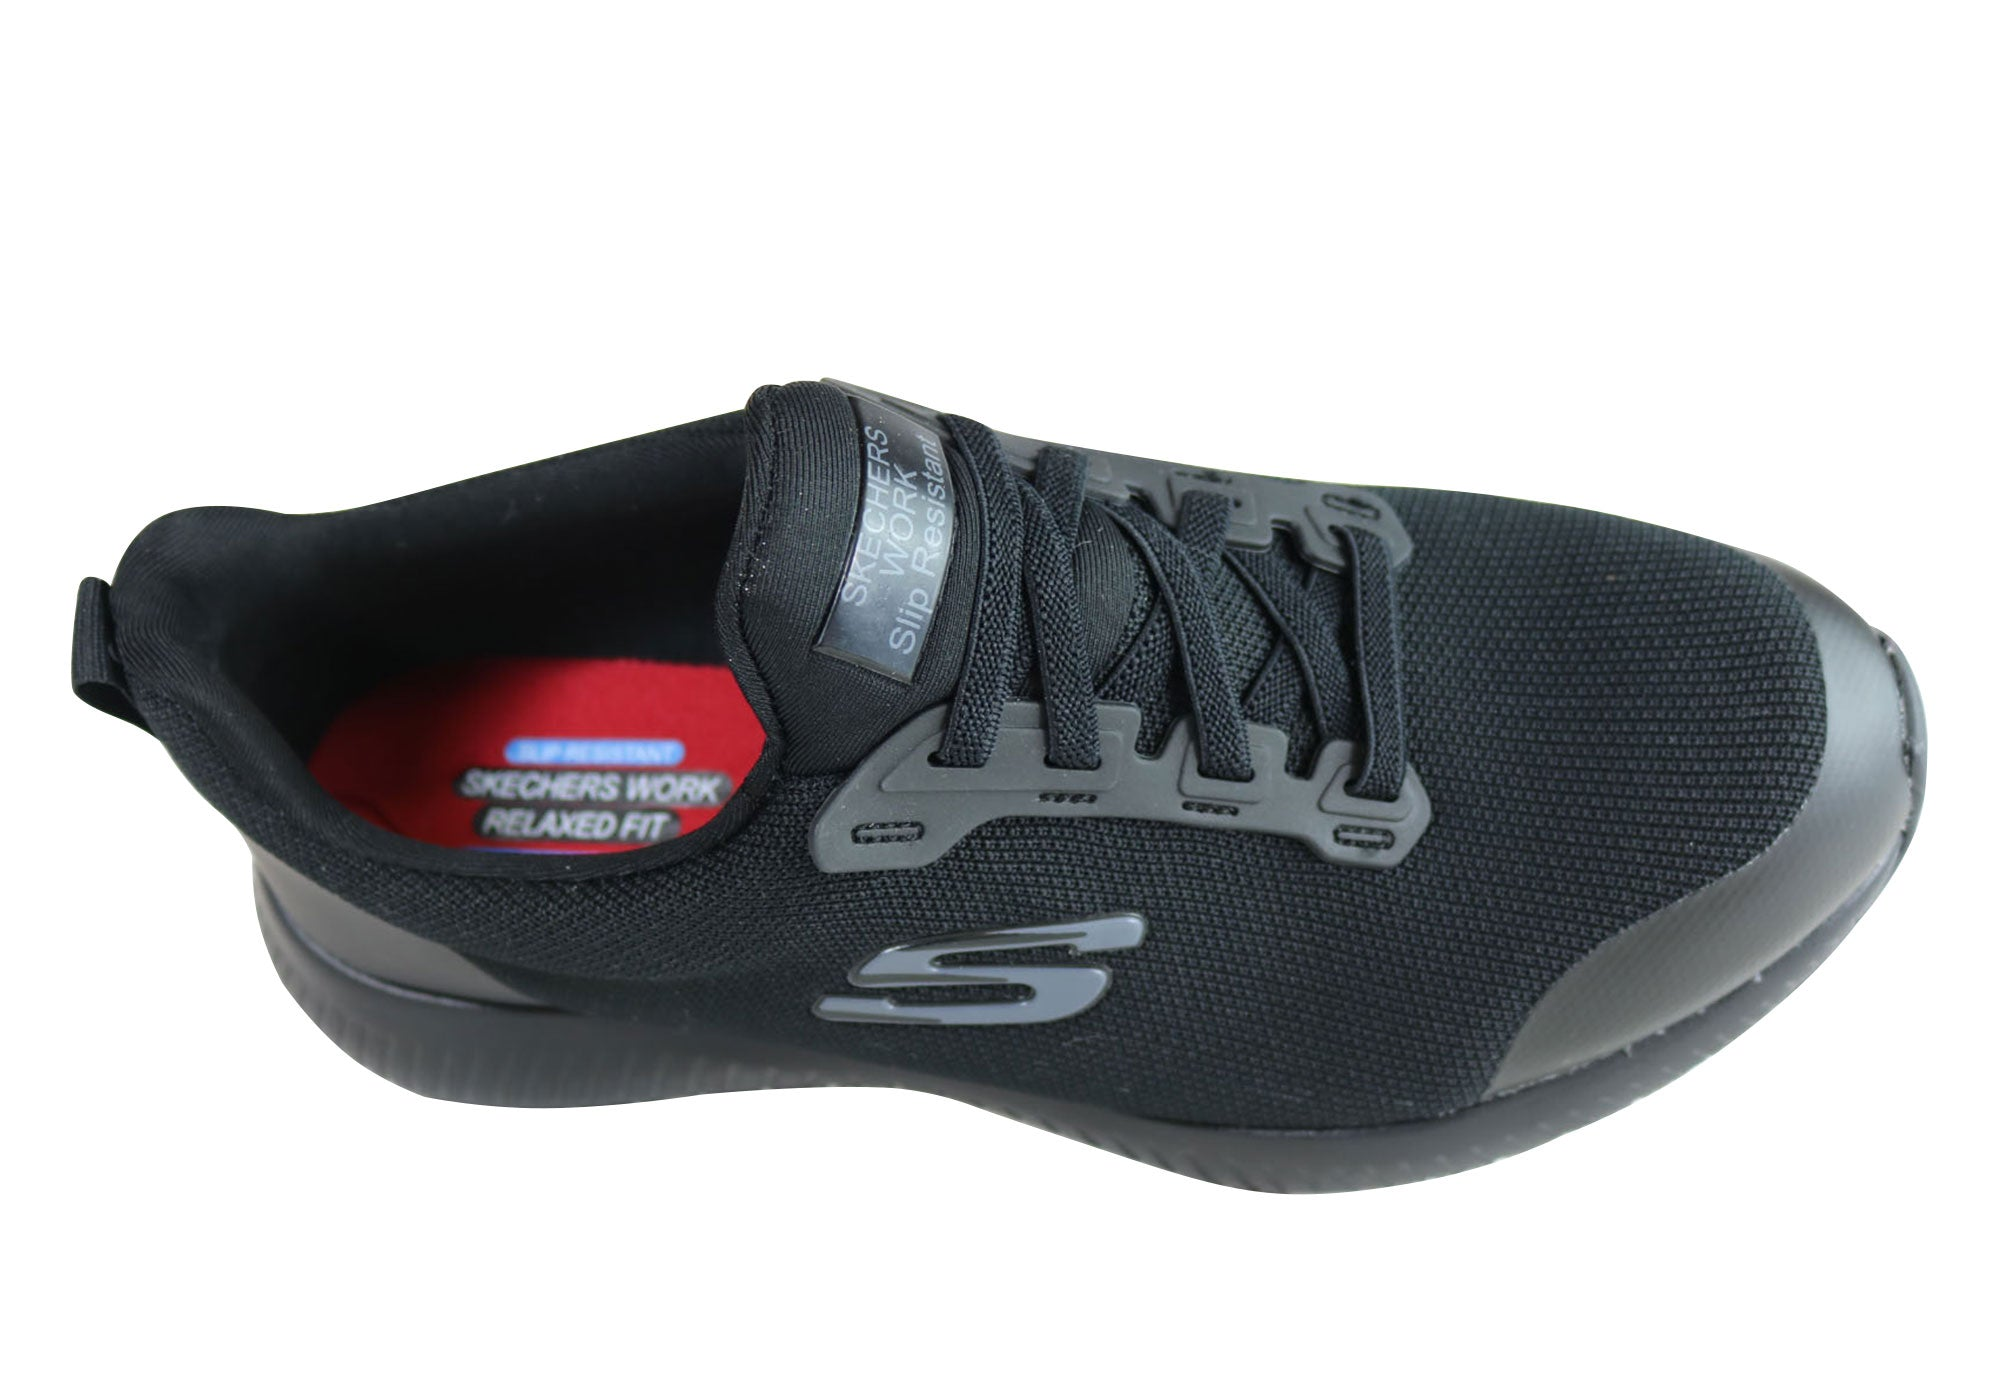 b79dd6c26784 New Skechers Squad Slip Resistant Comfort Memory Foam Work Shoes Womens